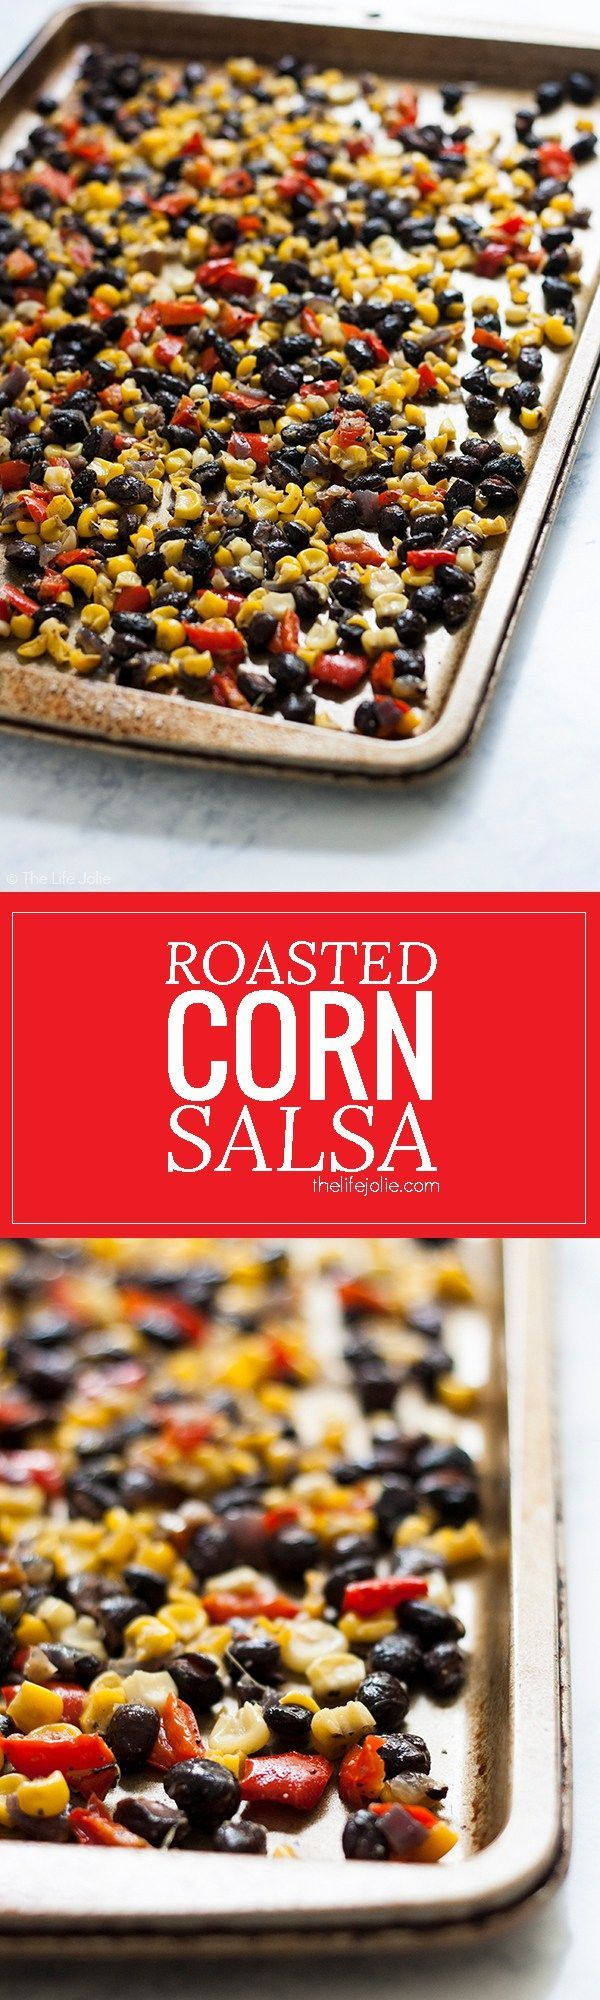 This Roasted Corn Salsa recipe is an easy and healthy addition to a salad, meat-based dinner entree or eggs in the morning. It's homemade with black beans, fresh corn, onions and peppers- I seriously love this so much I now keep a container of it in my re